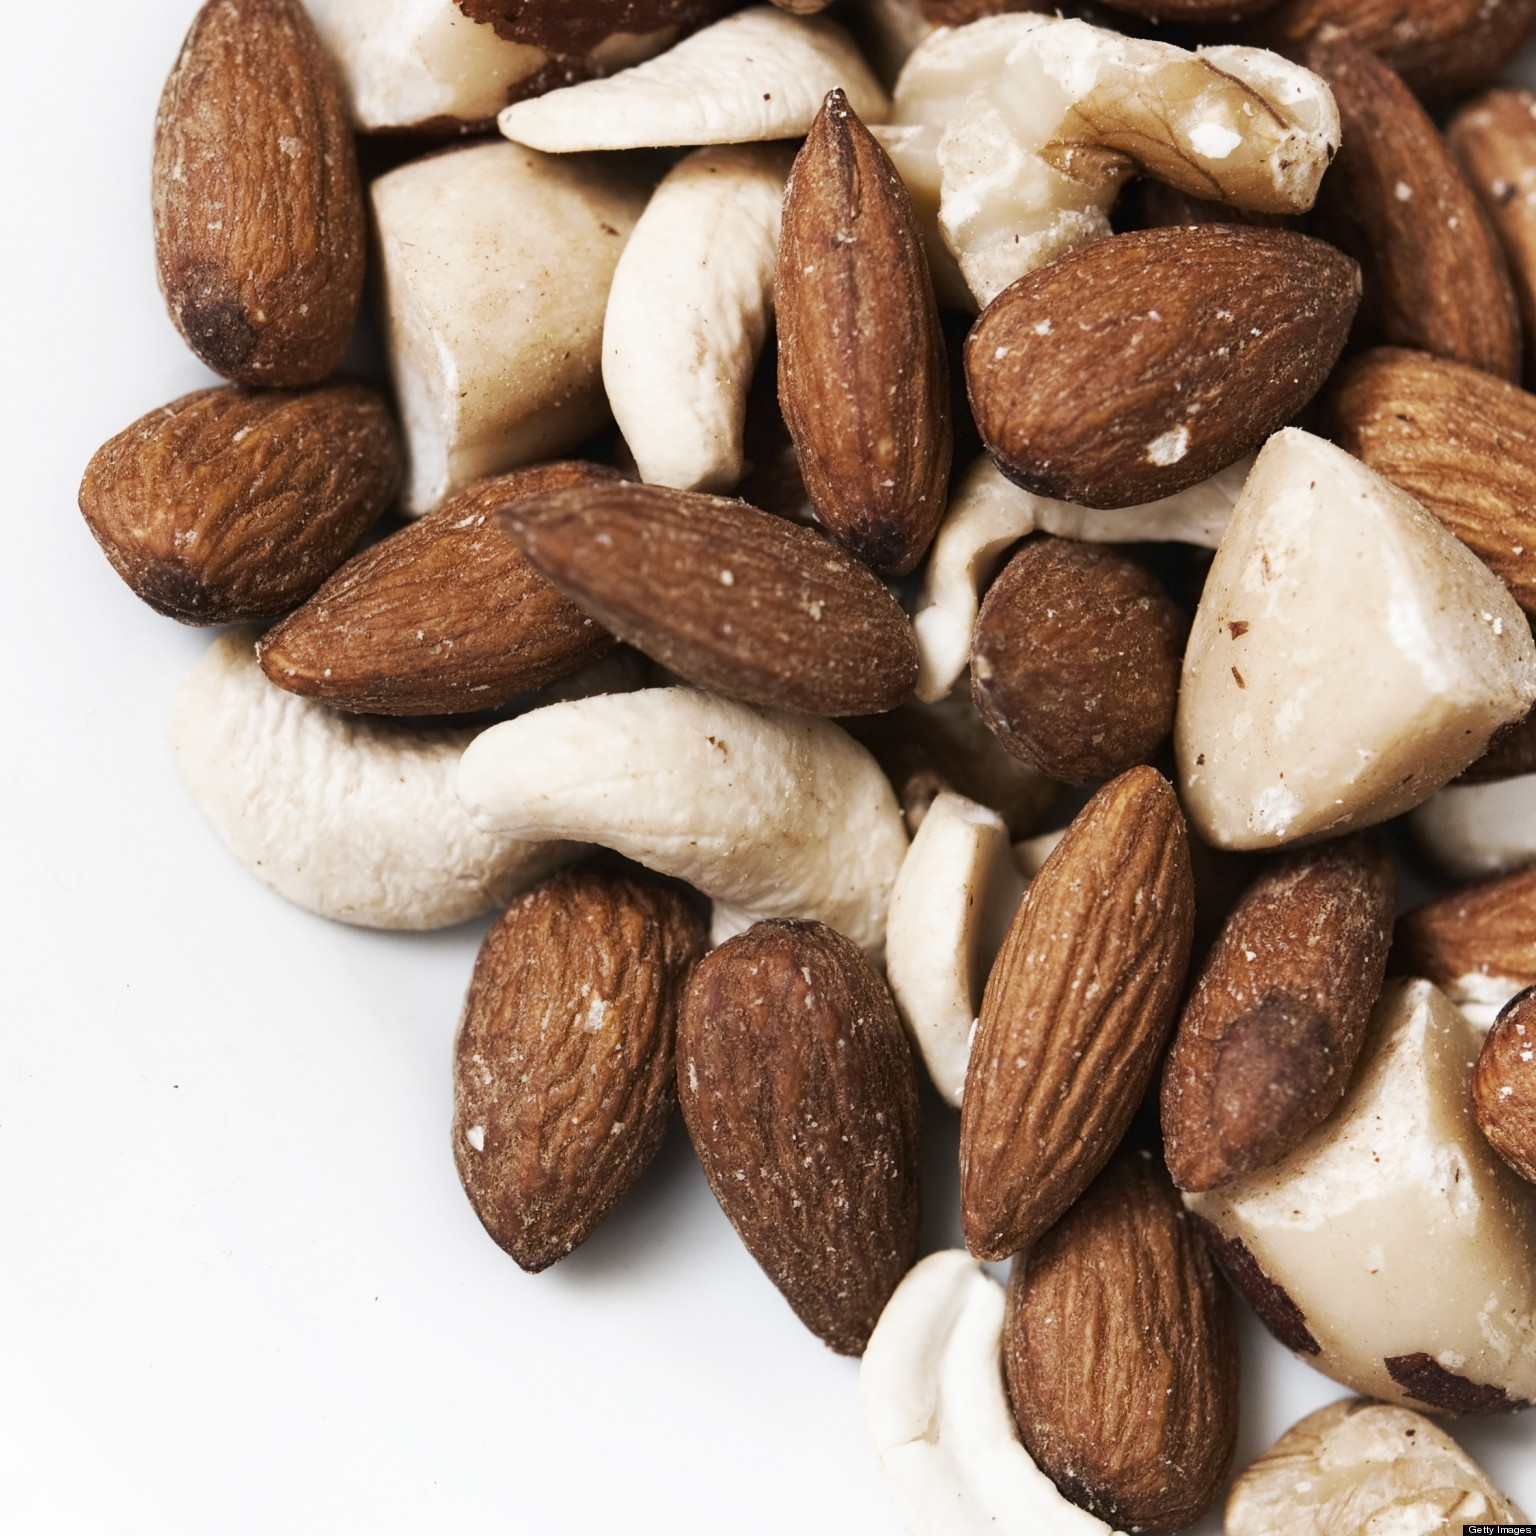 Healthy Nuts Health Benefits For Almonds Walnuts